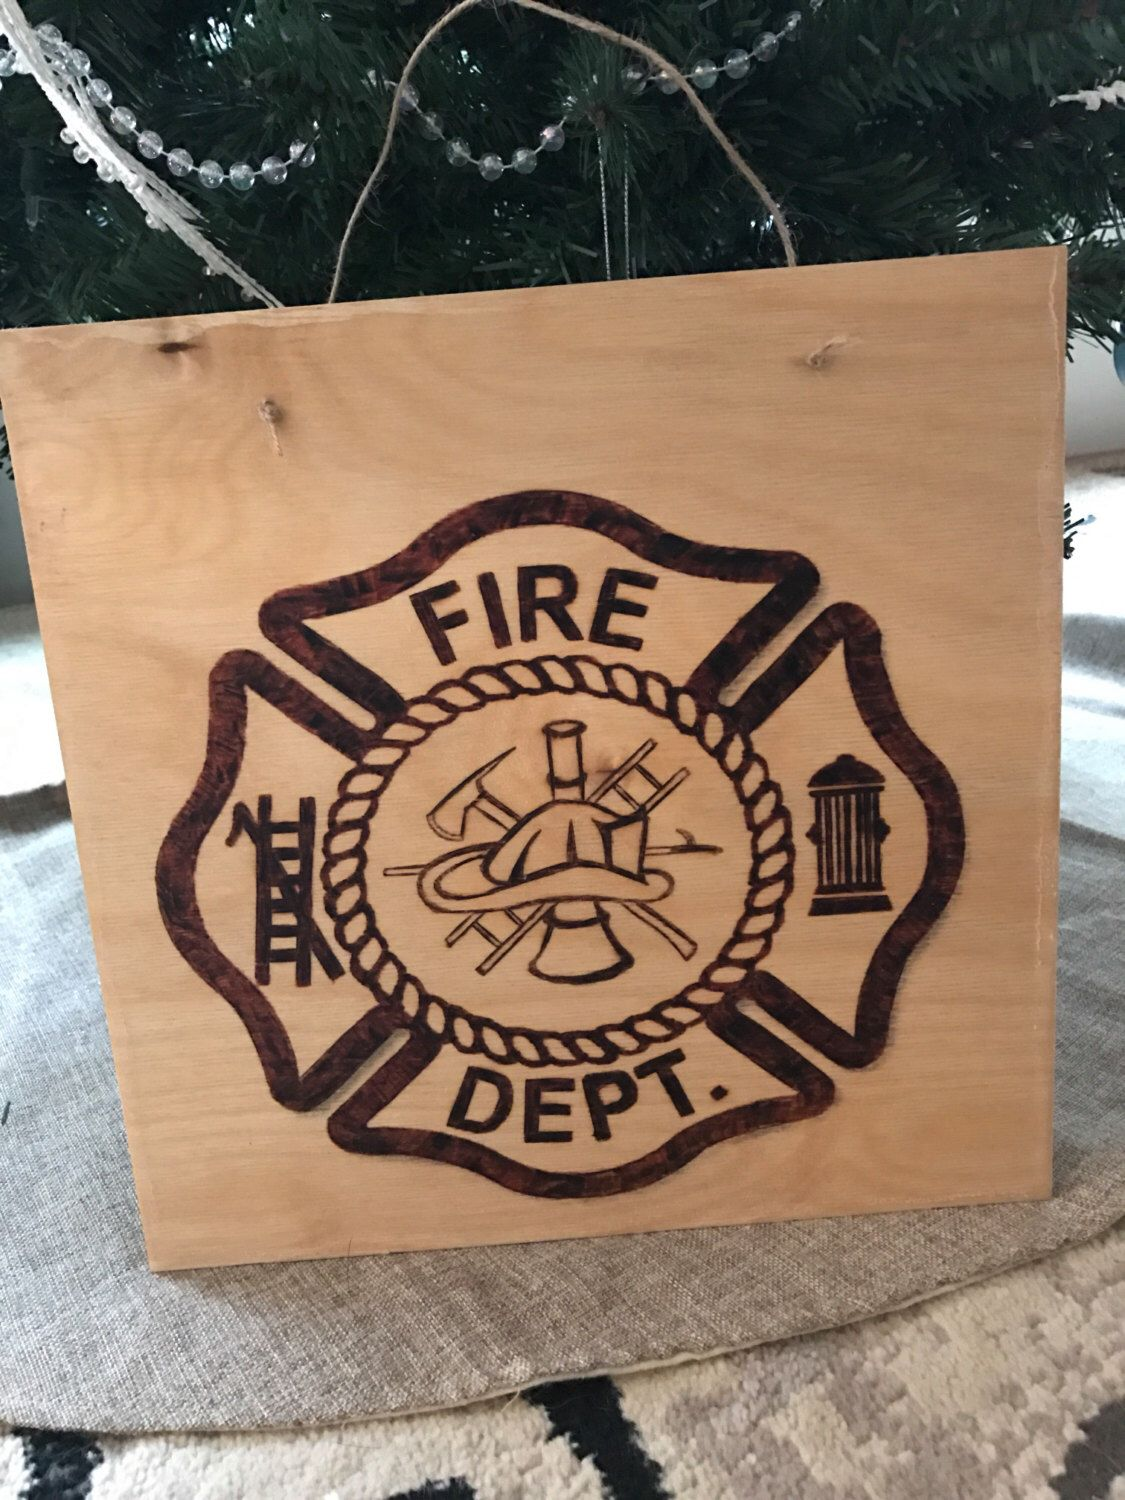 Fire Department Wall Decor Maltese Cross Home Decor Wood Burning Maltese Cross Firefighter Wood Sign Https W Wood Jewelry Diy Maltese Cross Wood Burning